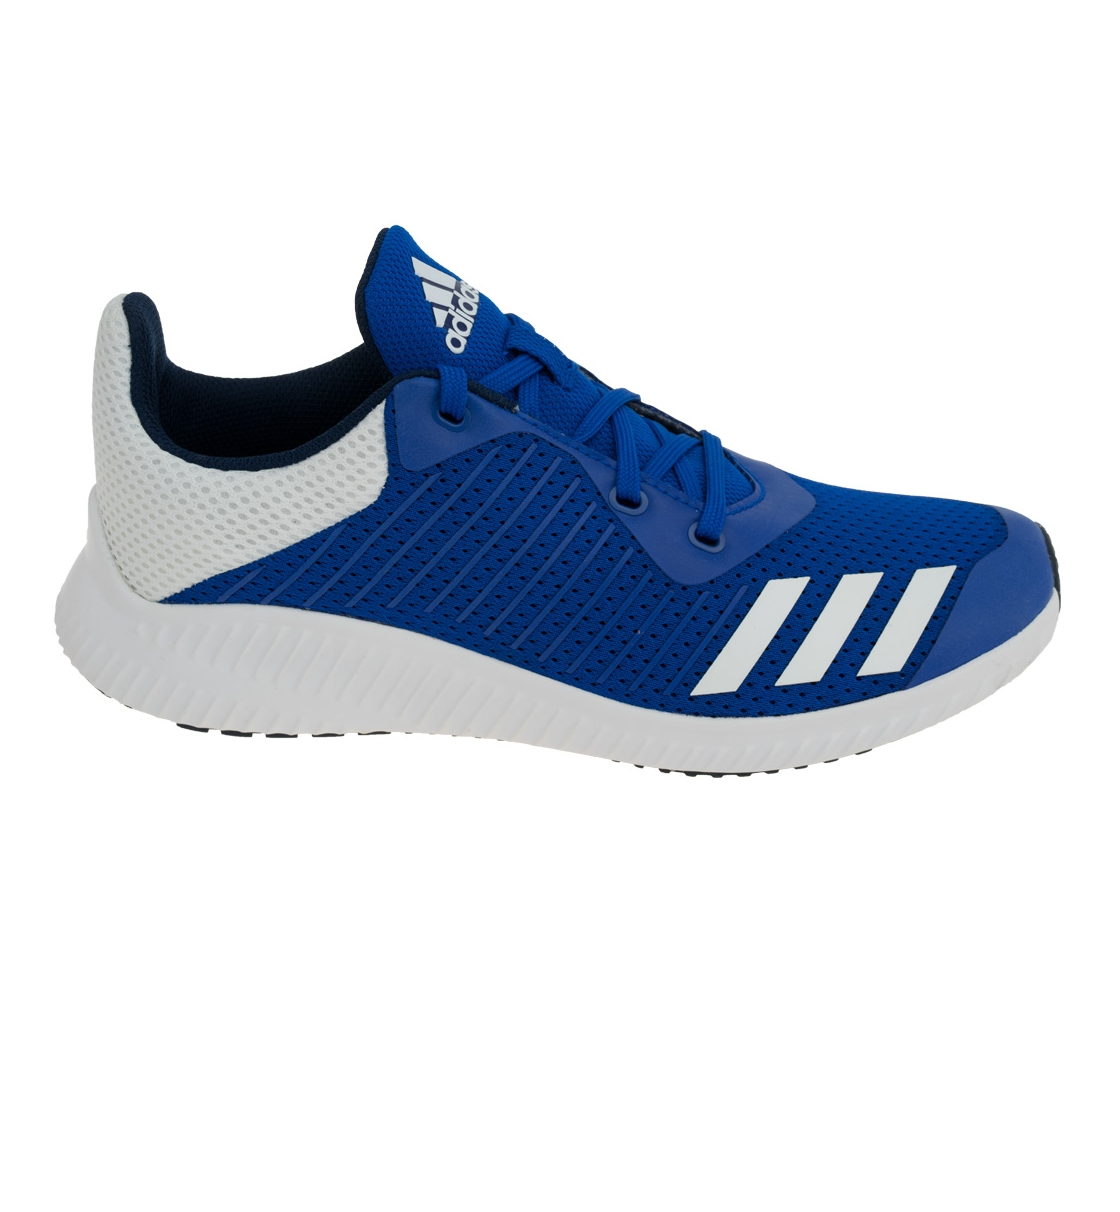 adidas Εφηβικό Παπούτσι Running Ftw Junior Add BY8997